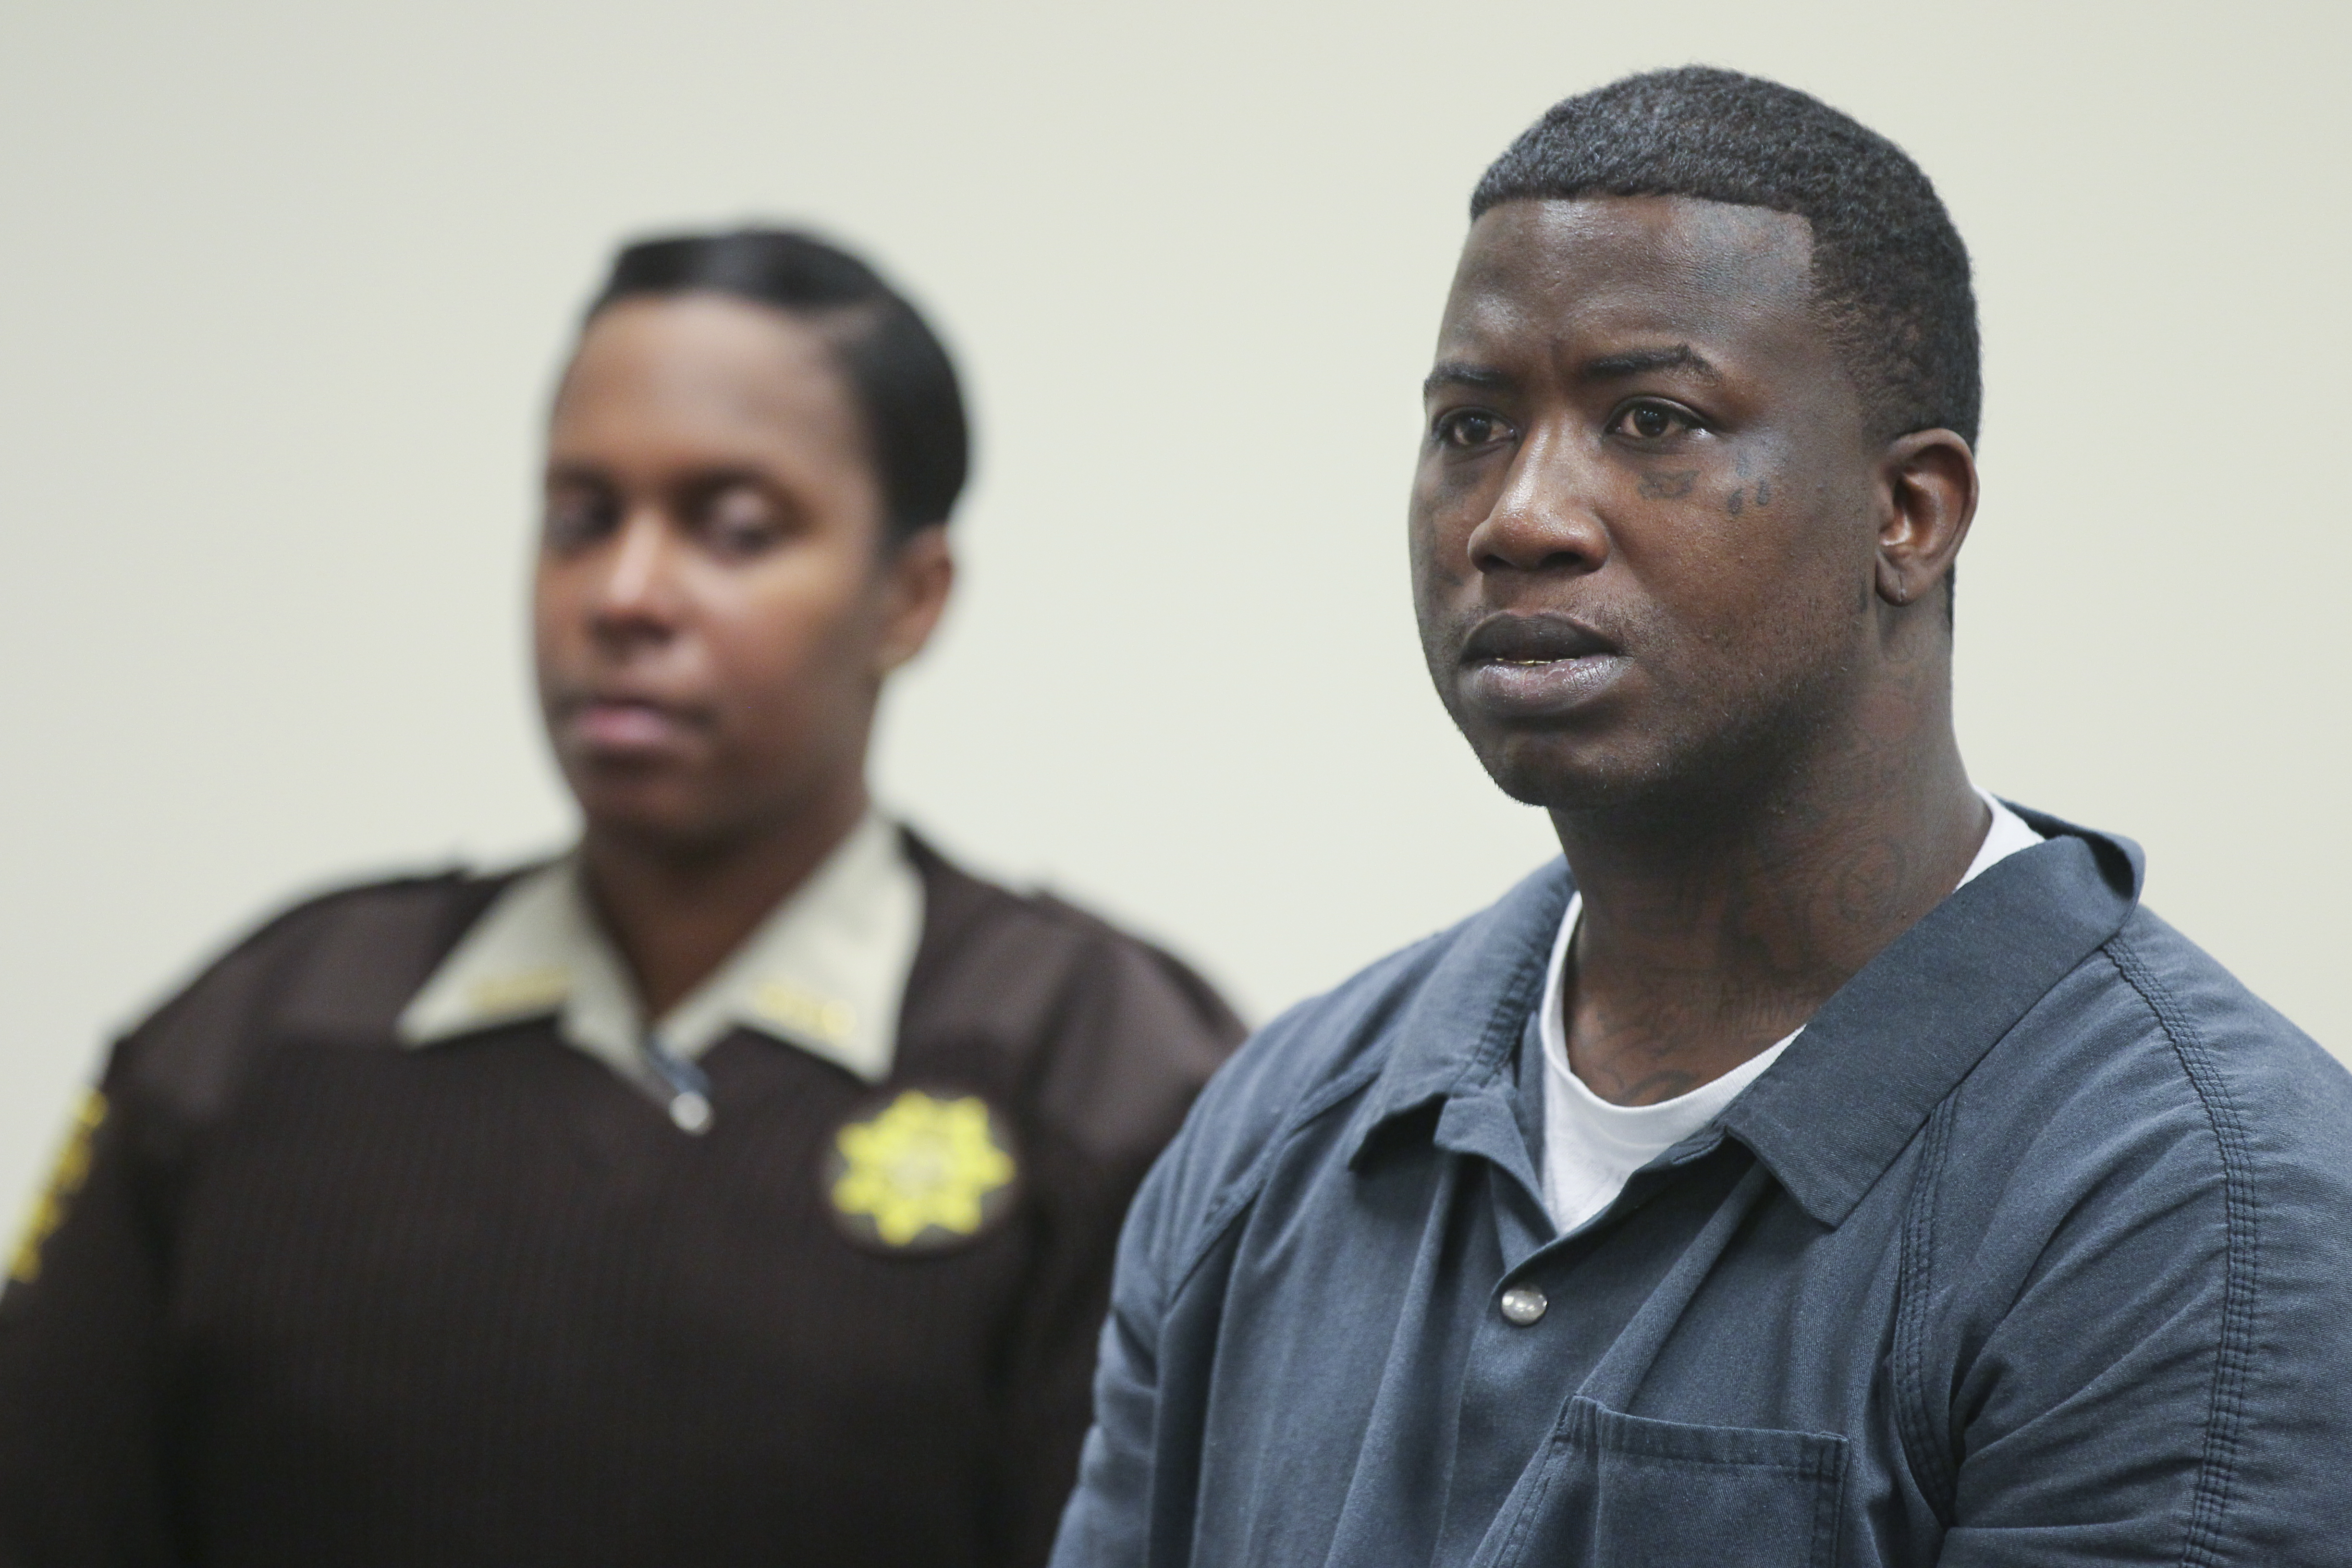 "Mar. 27, 2013 Atlanta: Fulton County Sheriff deputy T. Reynolds (left) looks on as defendant Radric Davis (right) listens. Rapper Gucci Mane was denied bond Wednesday at his first court appearance after his arrest for allegedly assaulting a soldier earlier this month at an Atlanta nightclub. His next court date is April 10. The musician, whose real name is Radric Davis, was booked into the Fulton County Jail Tuesday, charged with aggravated assault with a weapon, according to online jail records. Fulton County sheriff's spokeswoman Tracy Flanagan said Davis turned himself in at the jail about 11:30 p.m. Tuesday, and will face a magistrate for a first appearance at 11 a.m. Wednesday. Channel 2 Action News reported last week that Atlanta police had issued a warrant for the rapper following the March 16 incident at the Harlem Nights club on Courtland Street. The alleged victim told Channel 2 that Davis hit him in the head with a champagne bottle after he asked to take a photo with the rapper. ""I'm in the military. I wanted to get a picture with Gucci Mane, is it okay?"" the soldier said he asked a security guard. ""I was speaking to the security guard, and Gucci Mane hit me in the head with a bottle,"" the solder told Channel 2. The soldier told the station that he went to Grady Memorial Hospital by ambulance, and his injury required 10 stitches. JOHN SPINK / JSPINK@AJC.COM"